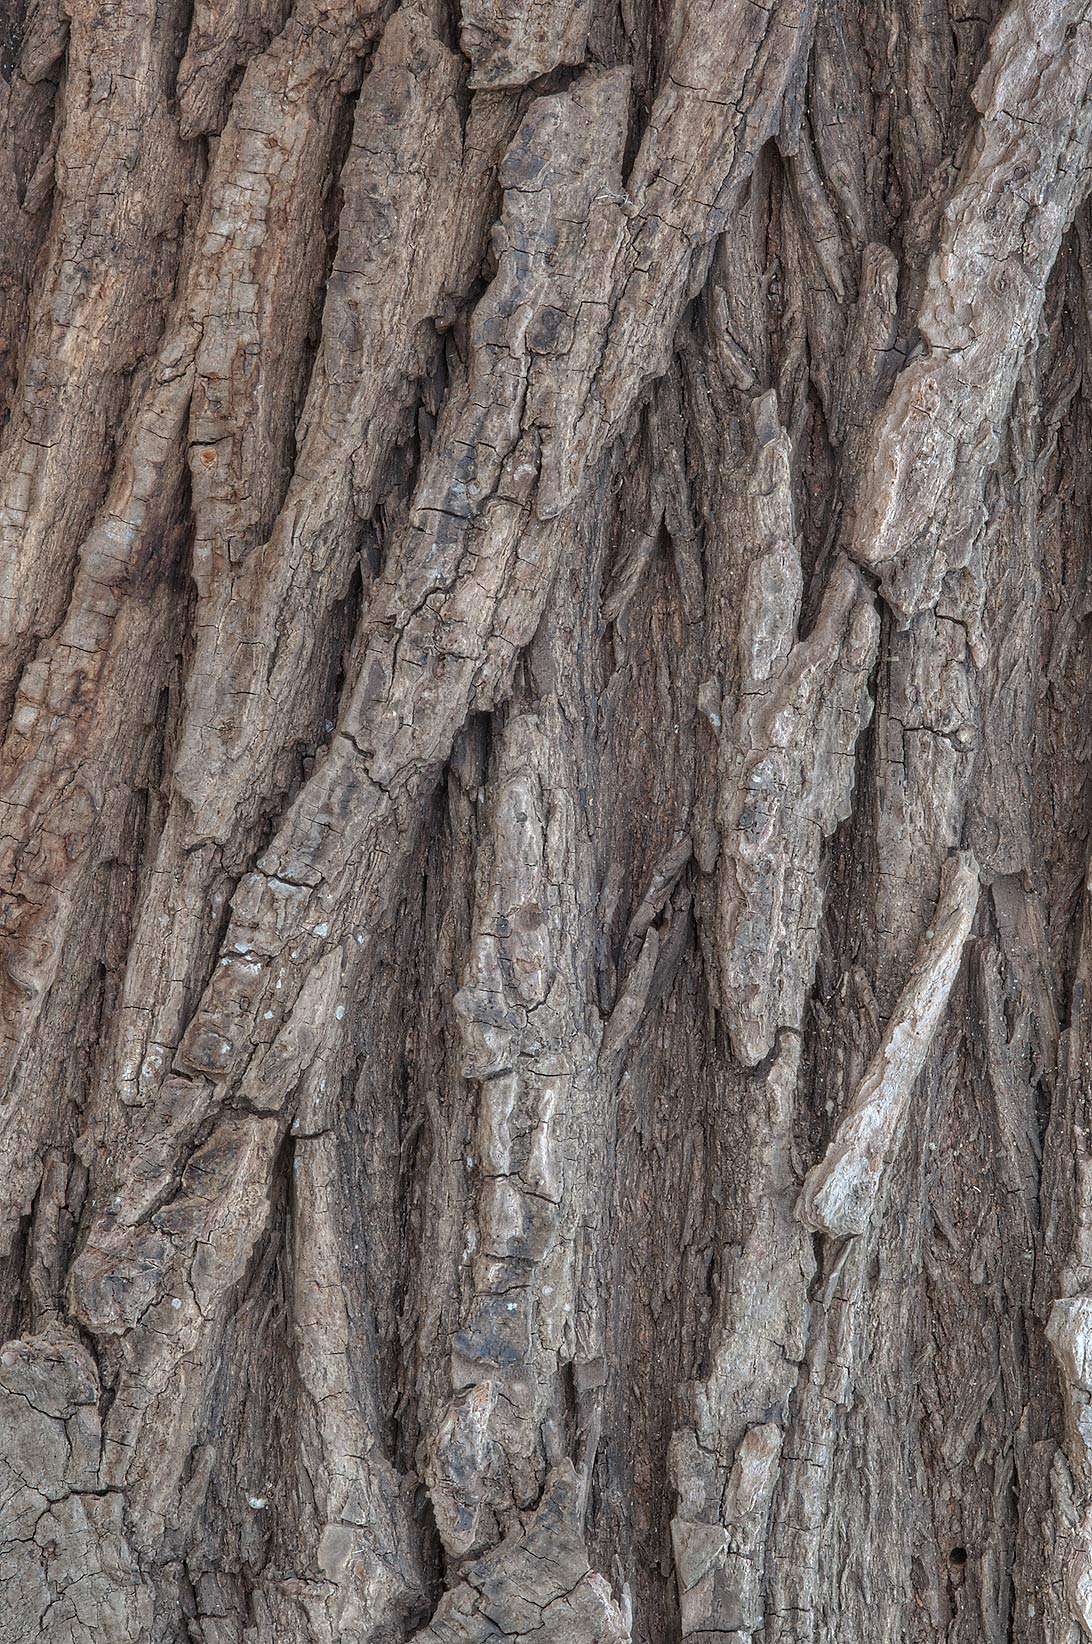 Bark of black willow in Washington-on-the-Brazos State Historic Site. Washington, Texas